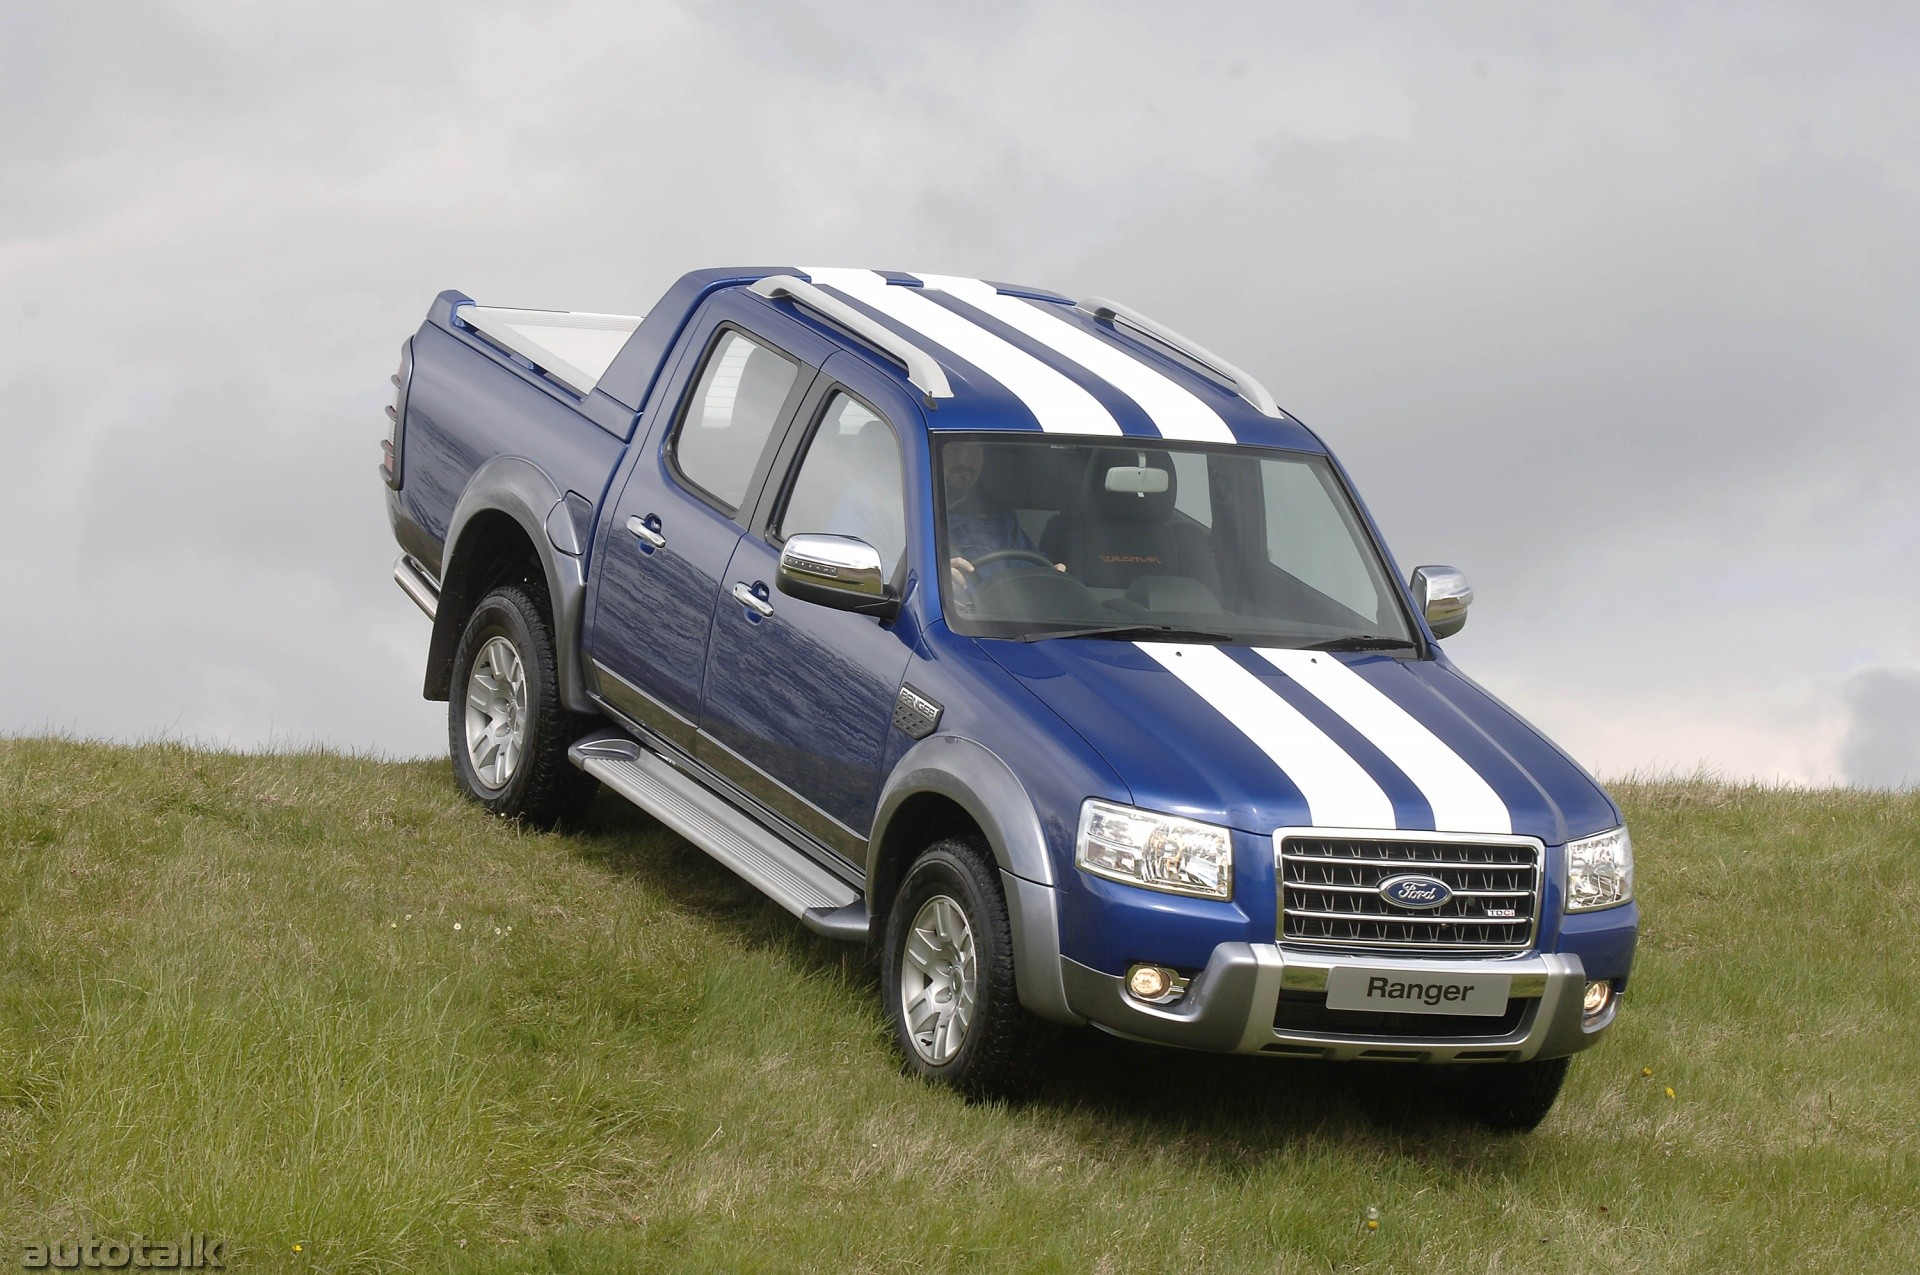 2008 Ford Ranger Wildtrak